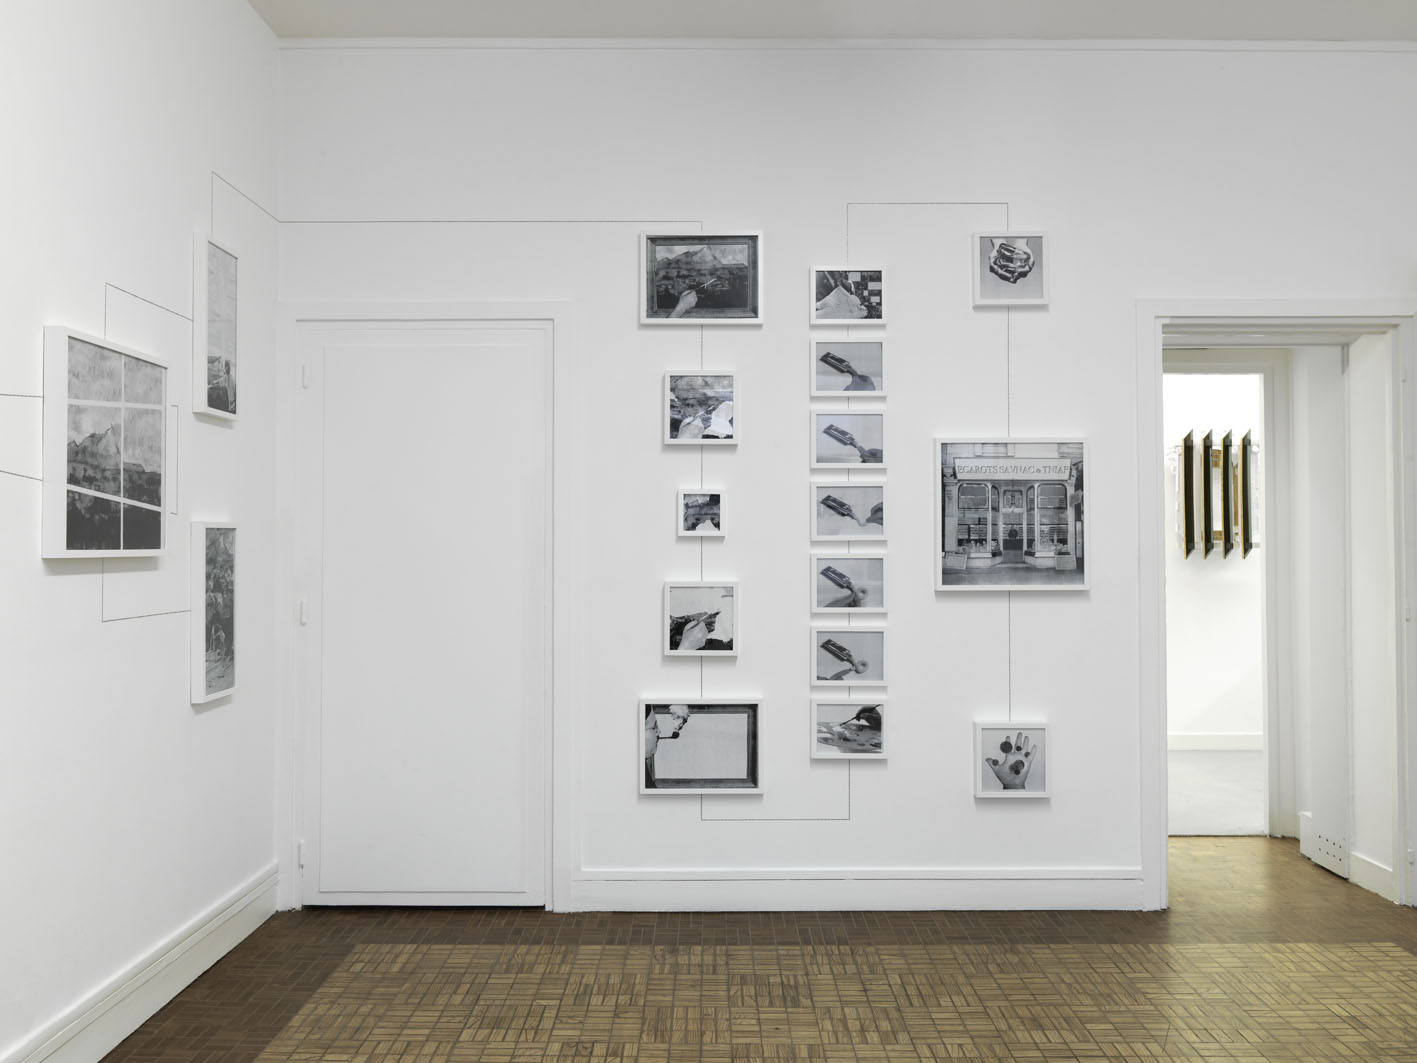 Despite Our Differences installation view, photo André Morin